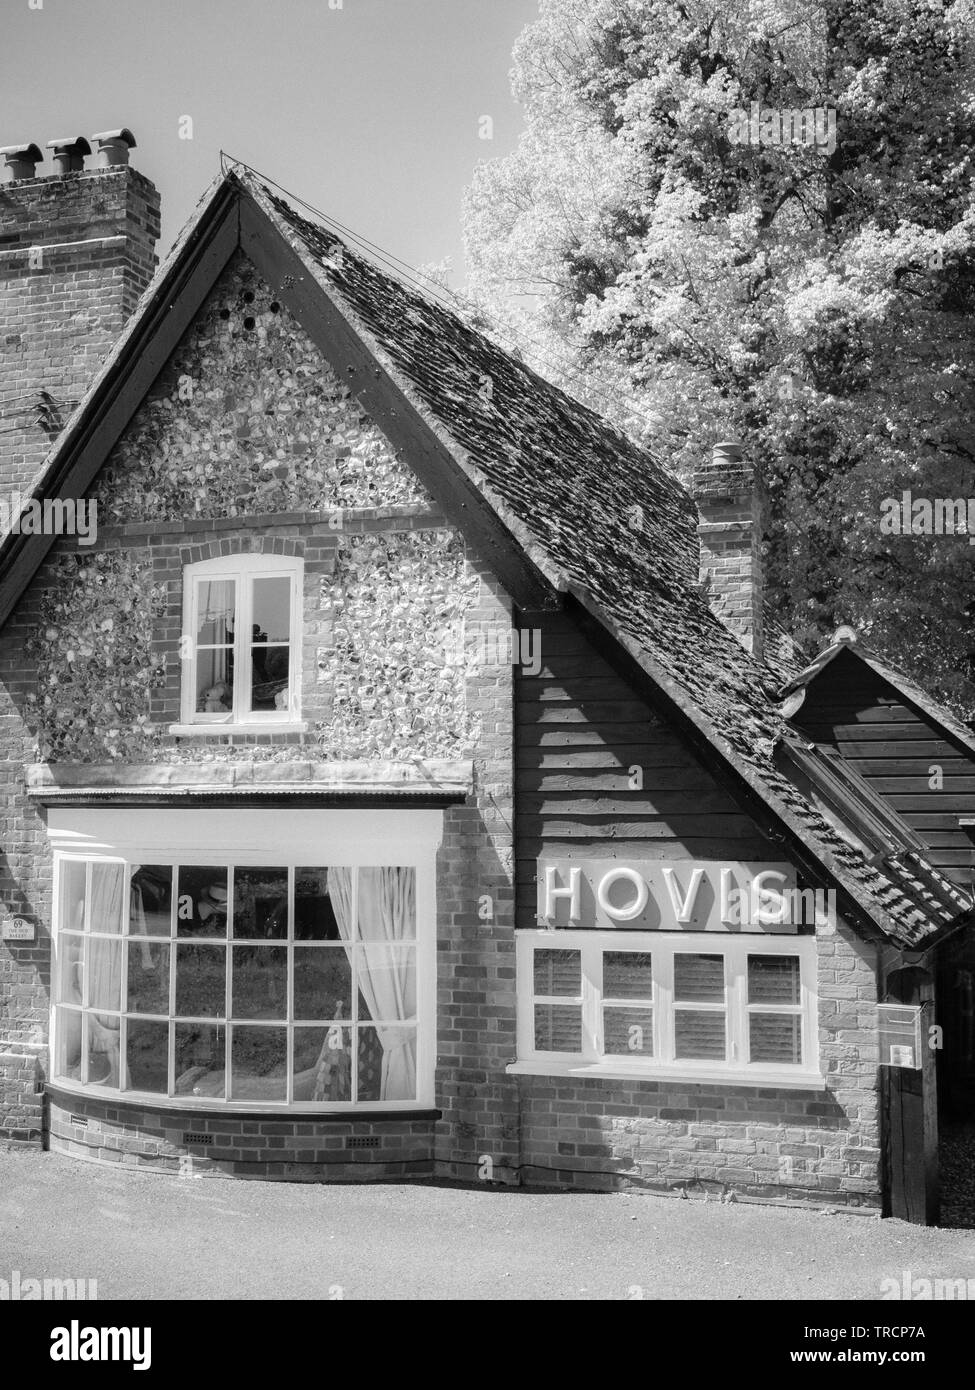 Old Bakery with Hovis Sign, Hambleden Village, Wycombe district, Berkshire, England, UK, GB. - Stock Image